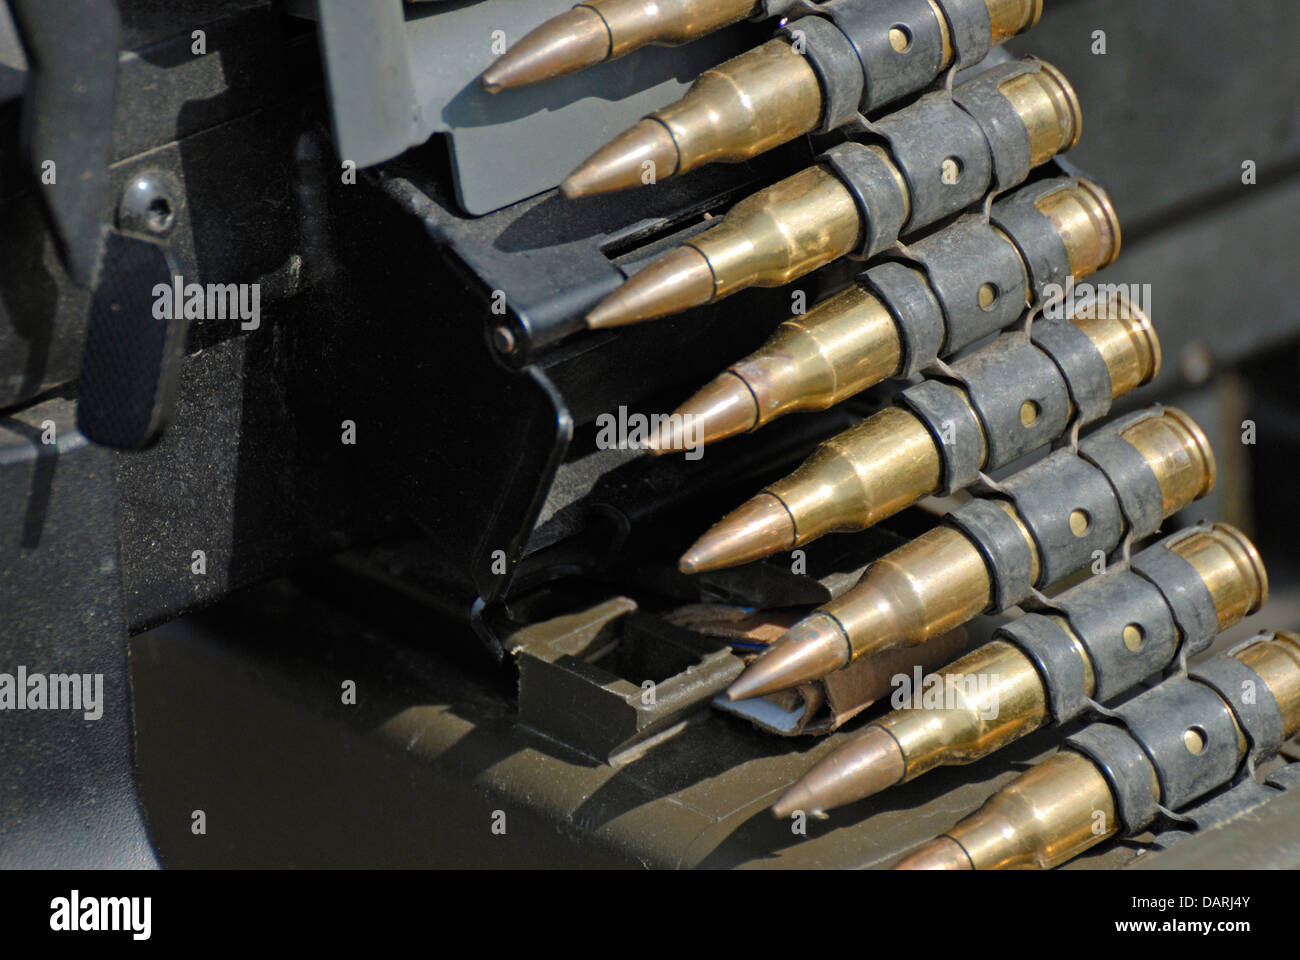 Machine gun bullets in belt fed through gun. War and Peace Revival, July 2013, Folkestone Racecourse, Kent, England, - Stock Image